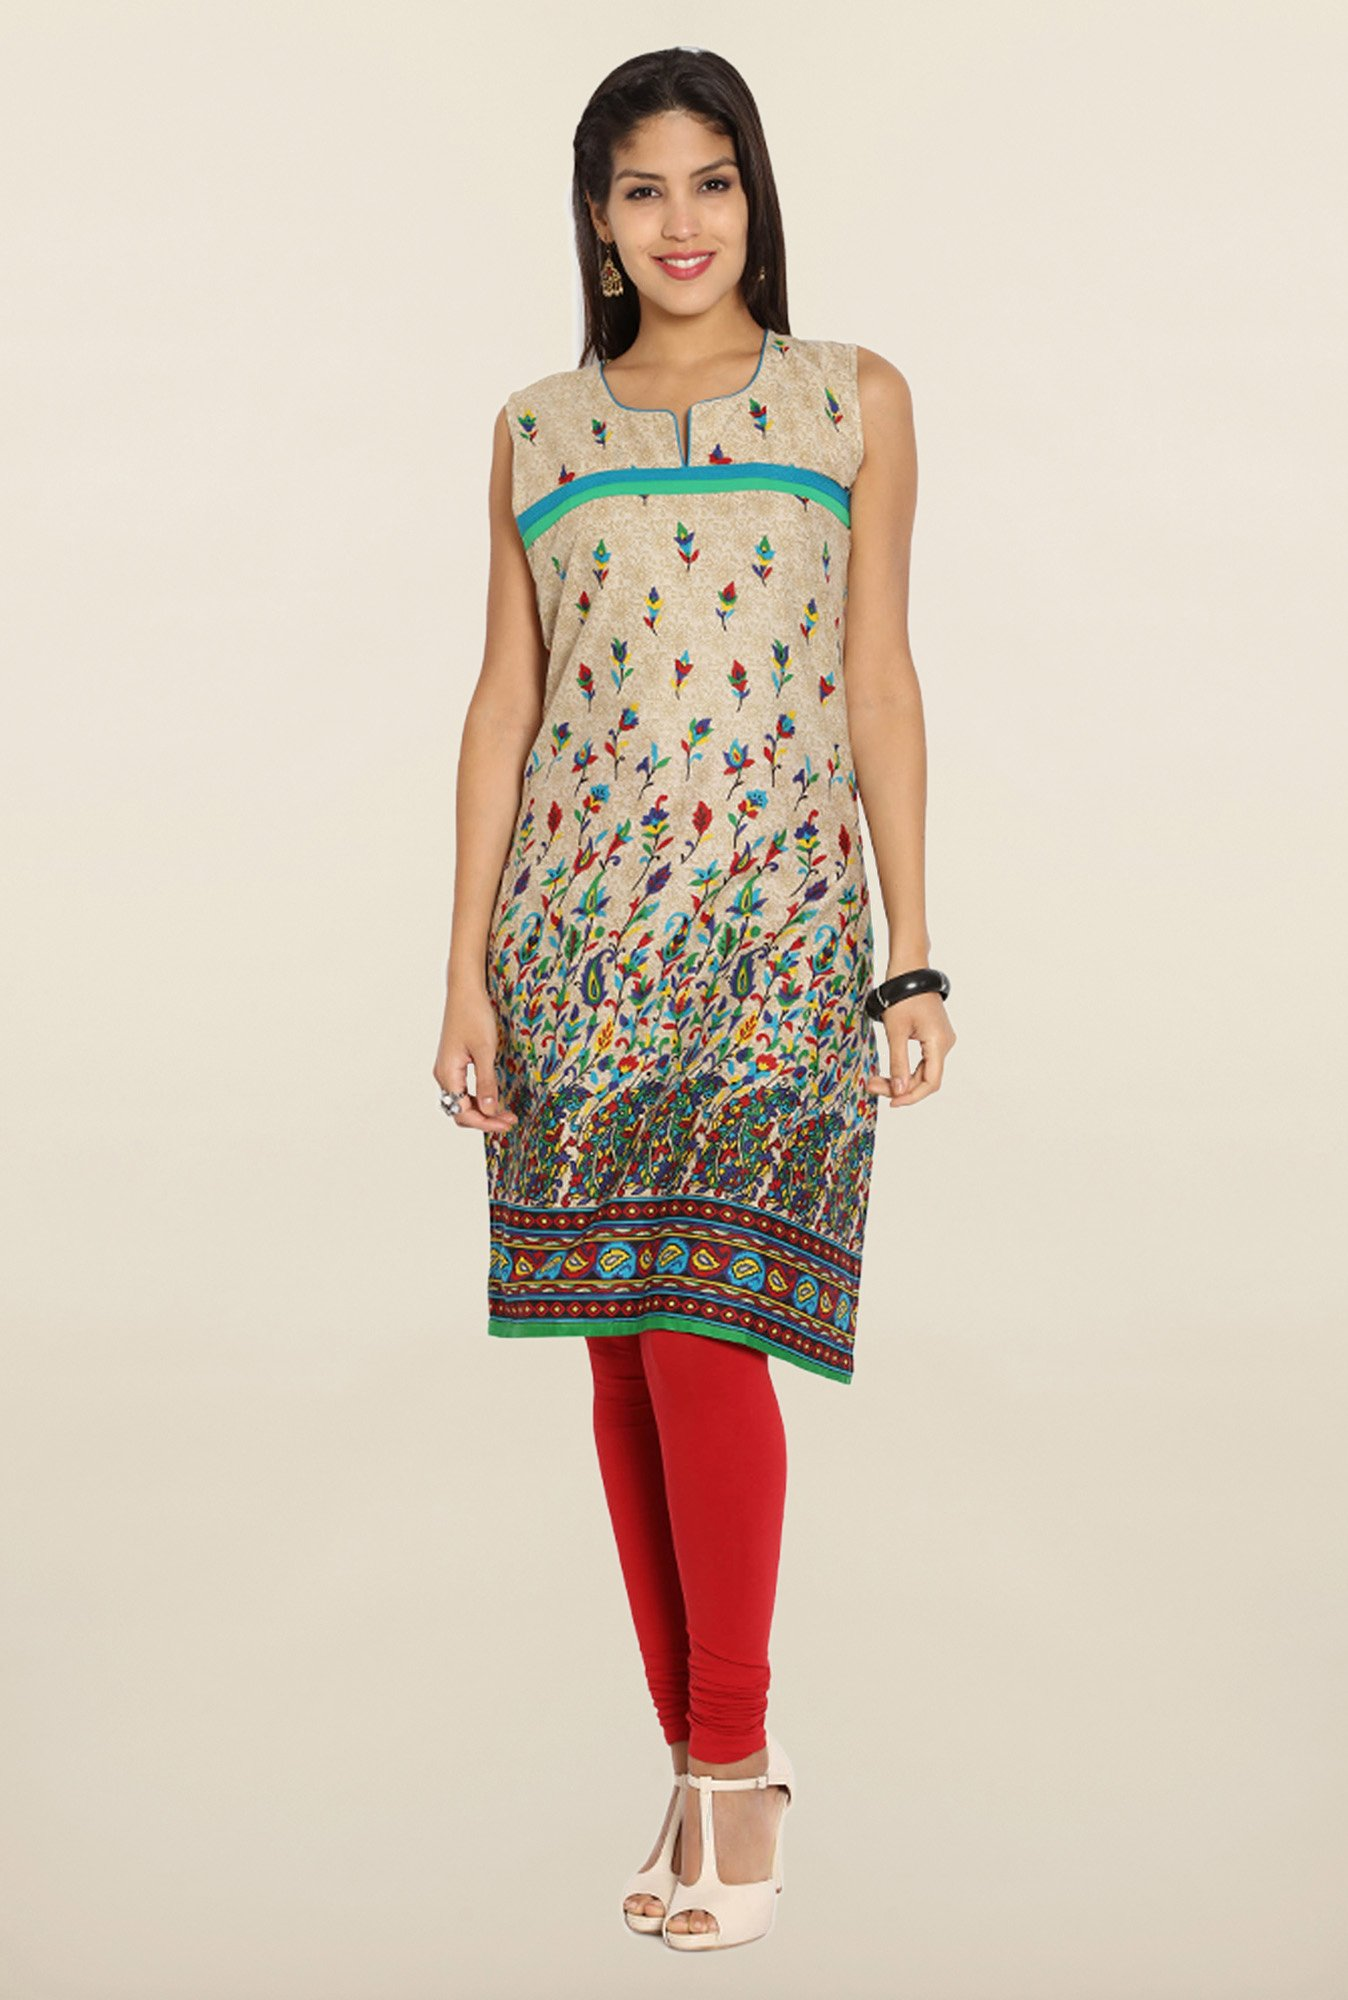 Soch Beige Printed sleeveless Cotton Kurti